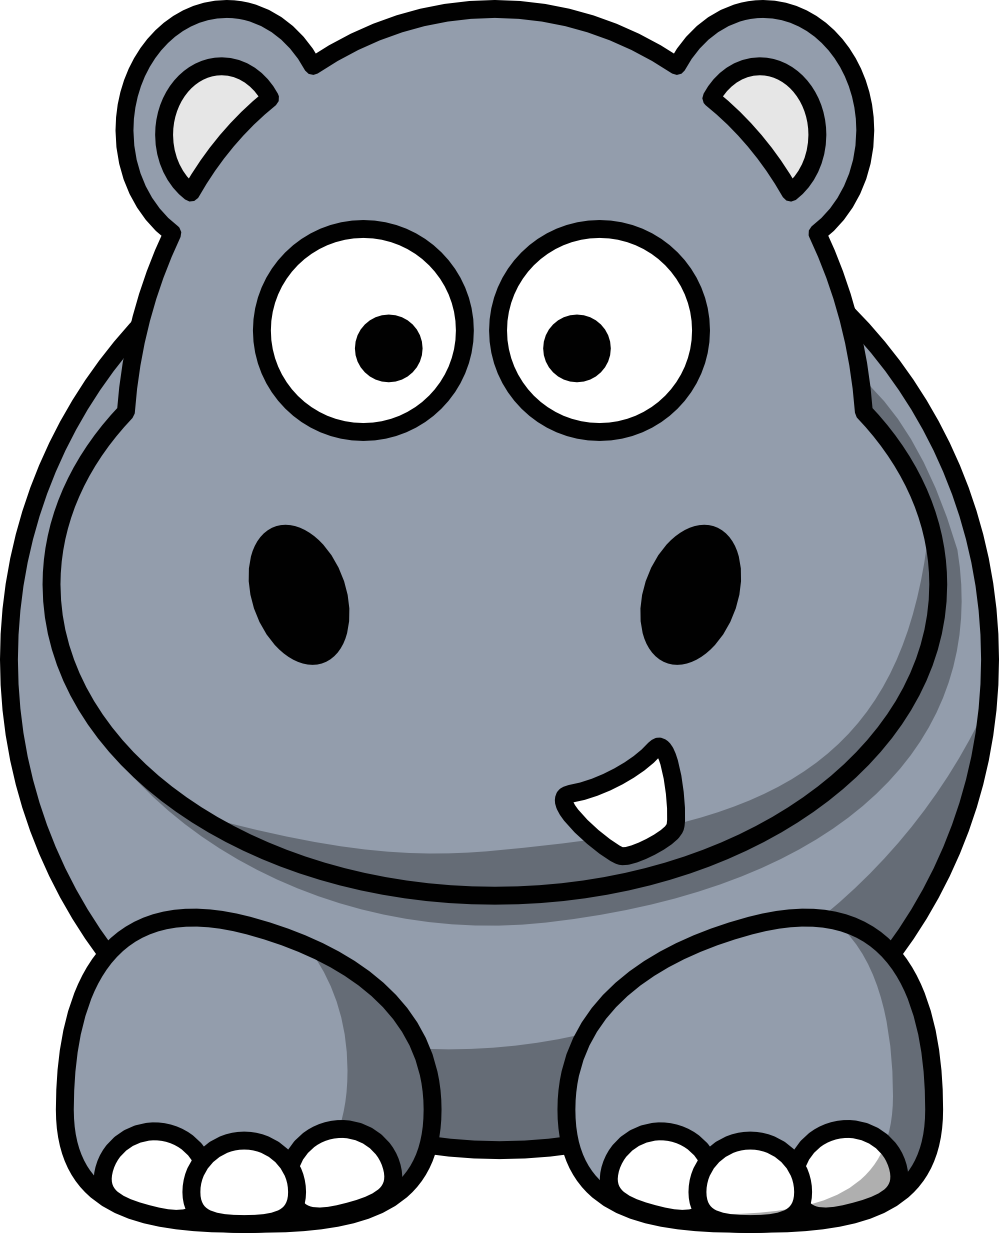 Hippo clipart face. Clip art black and